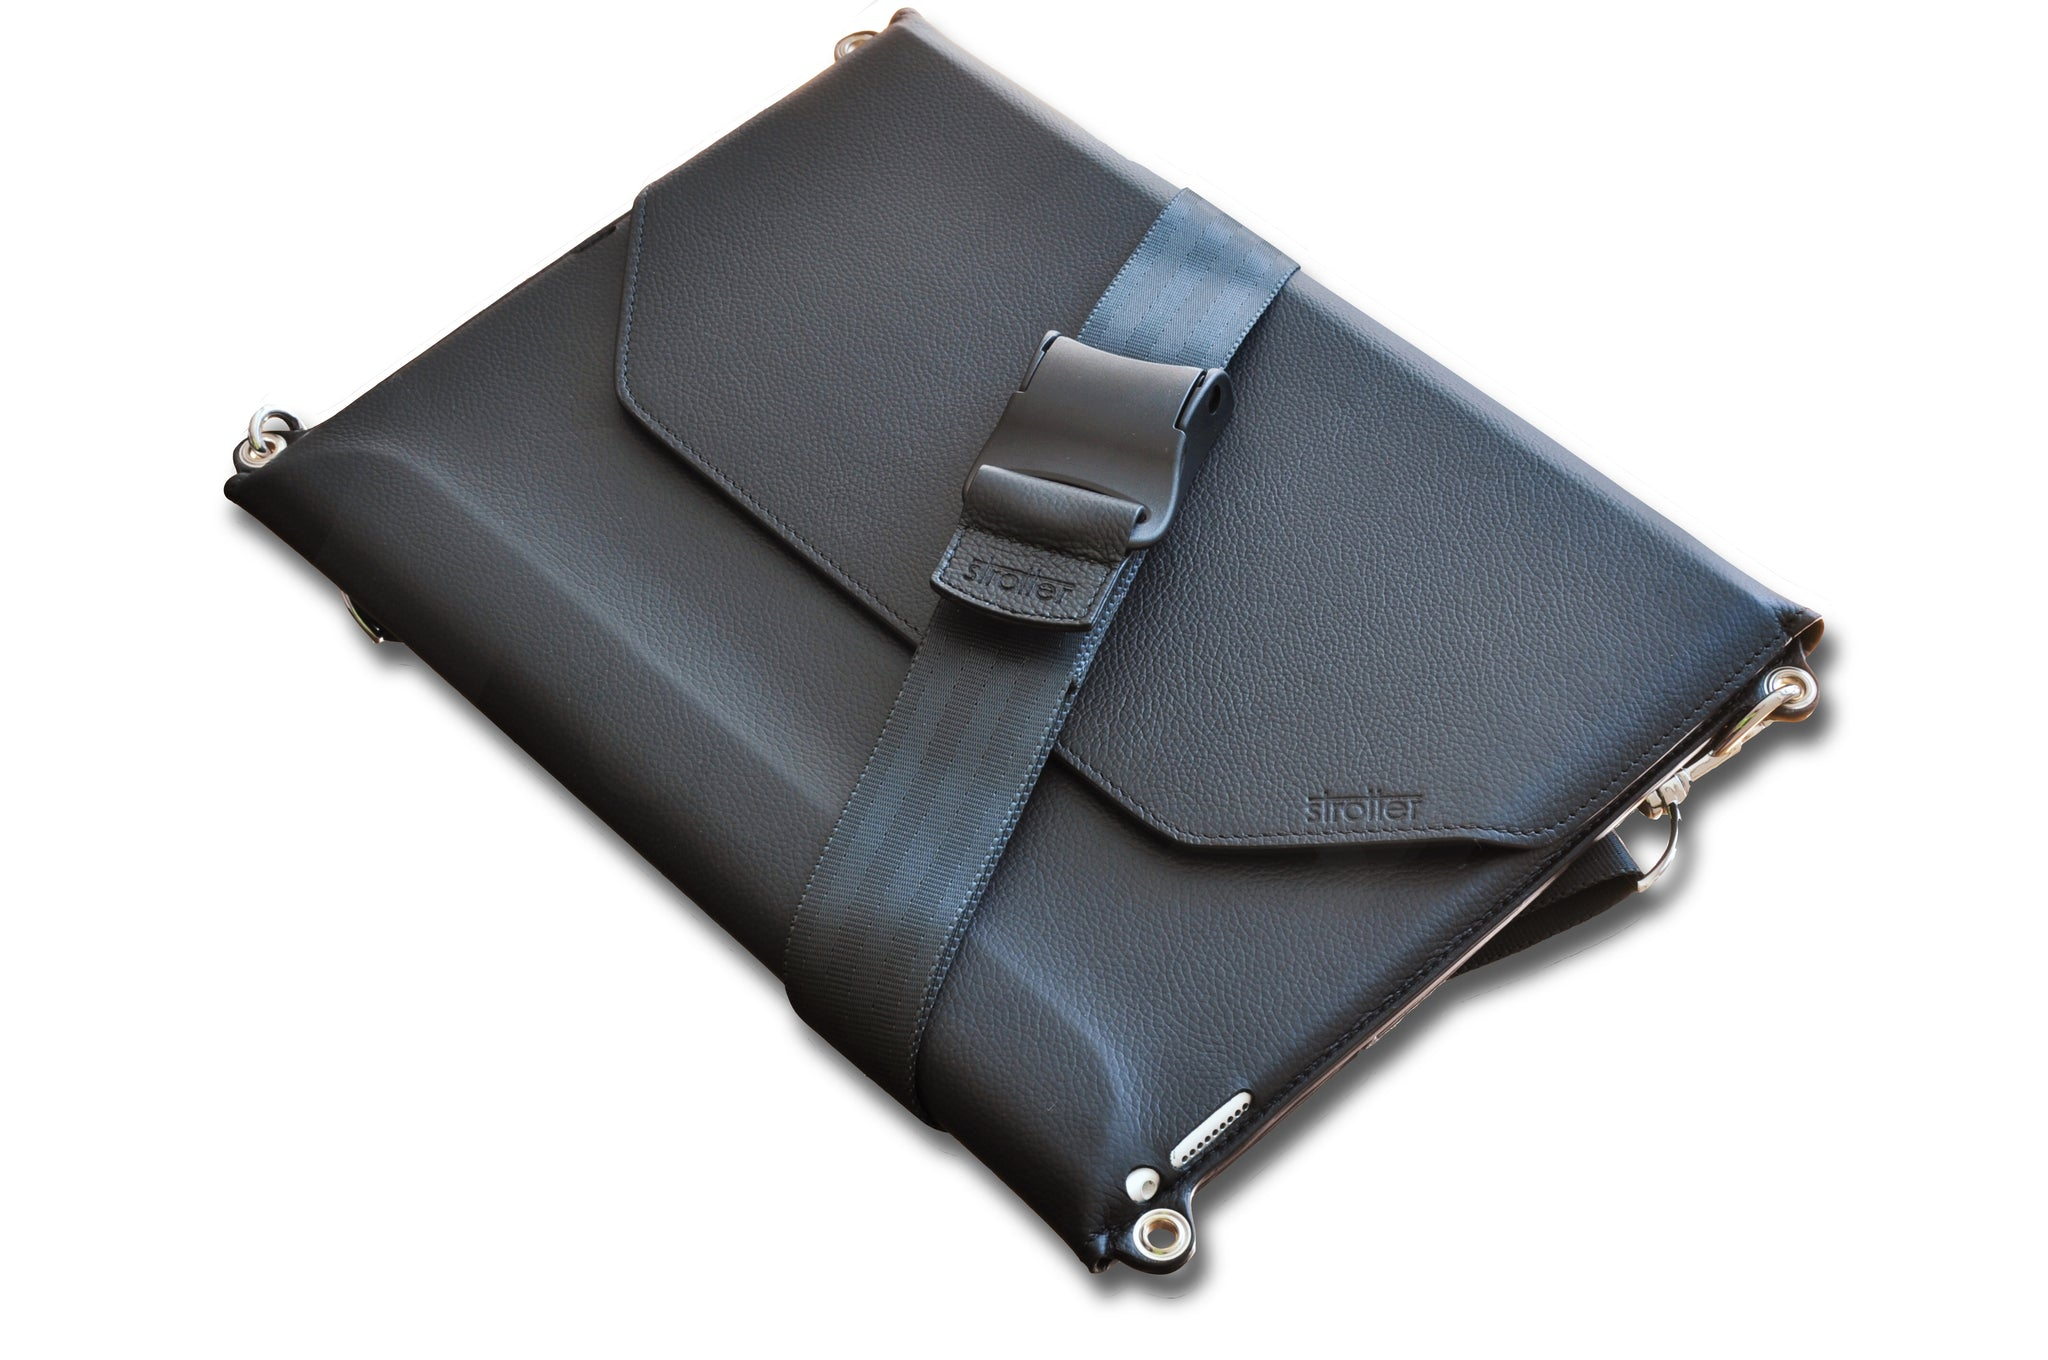 Black leather case with strap for iPad Pro 12.9